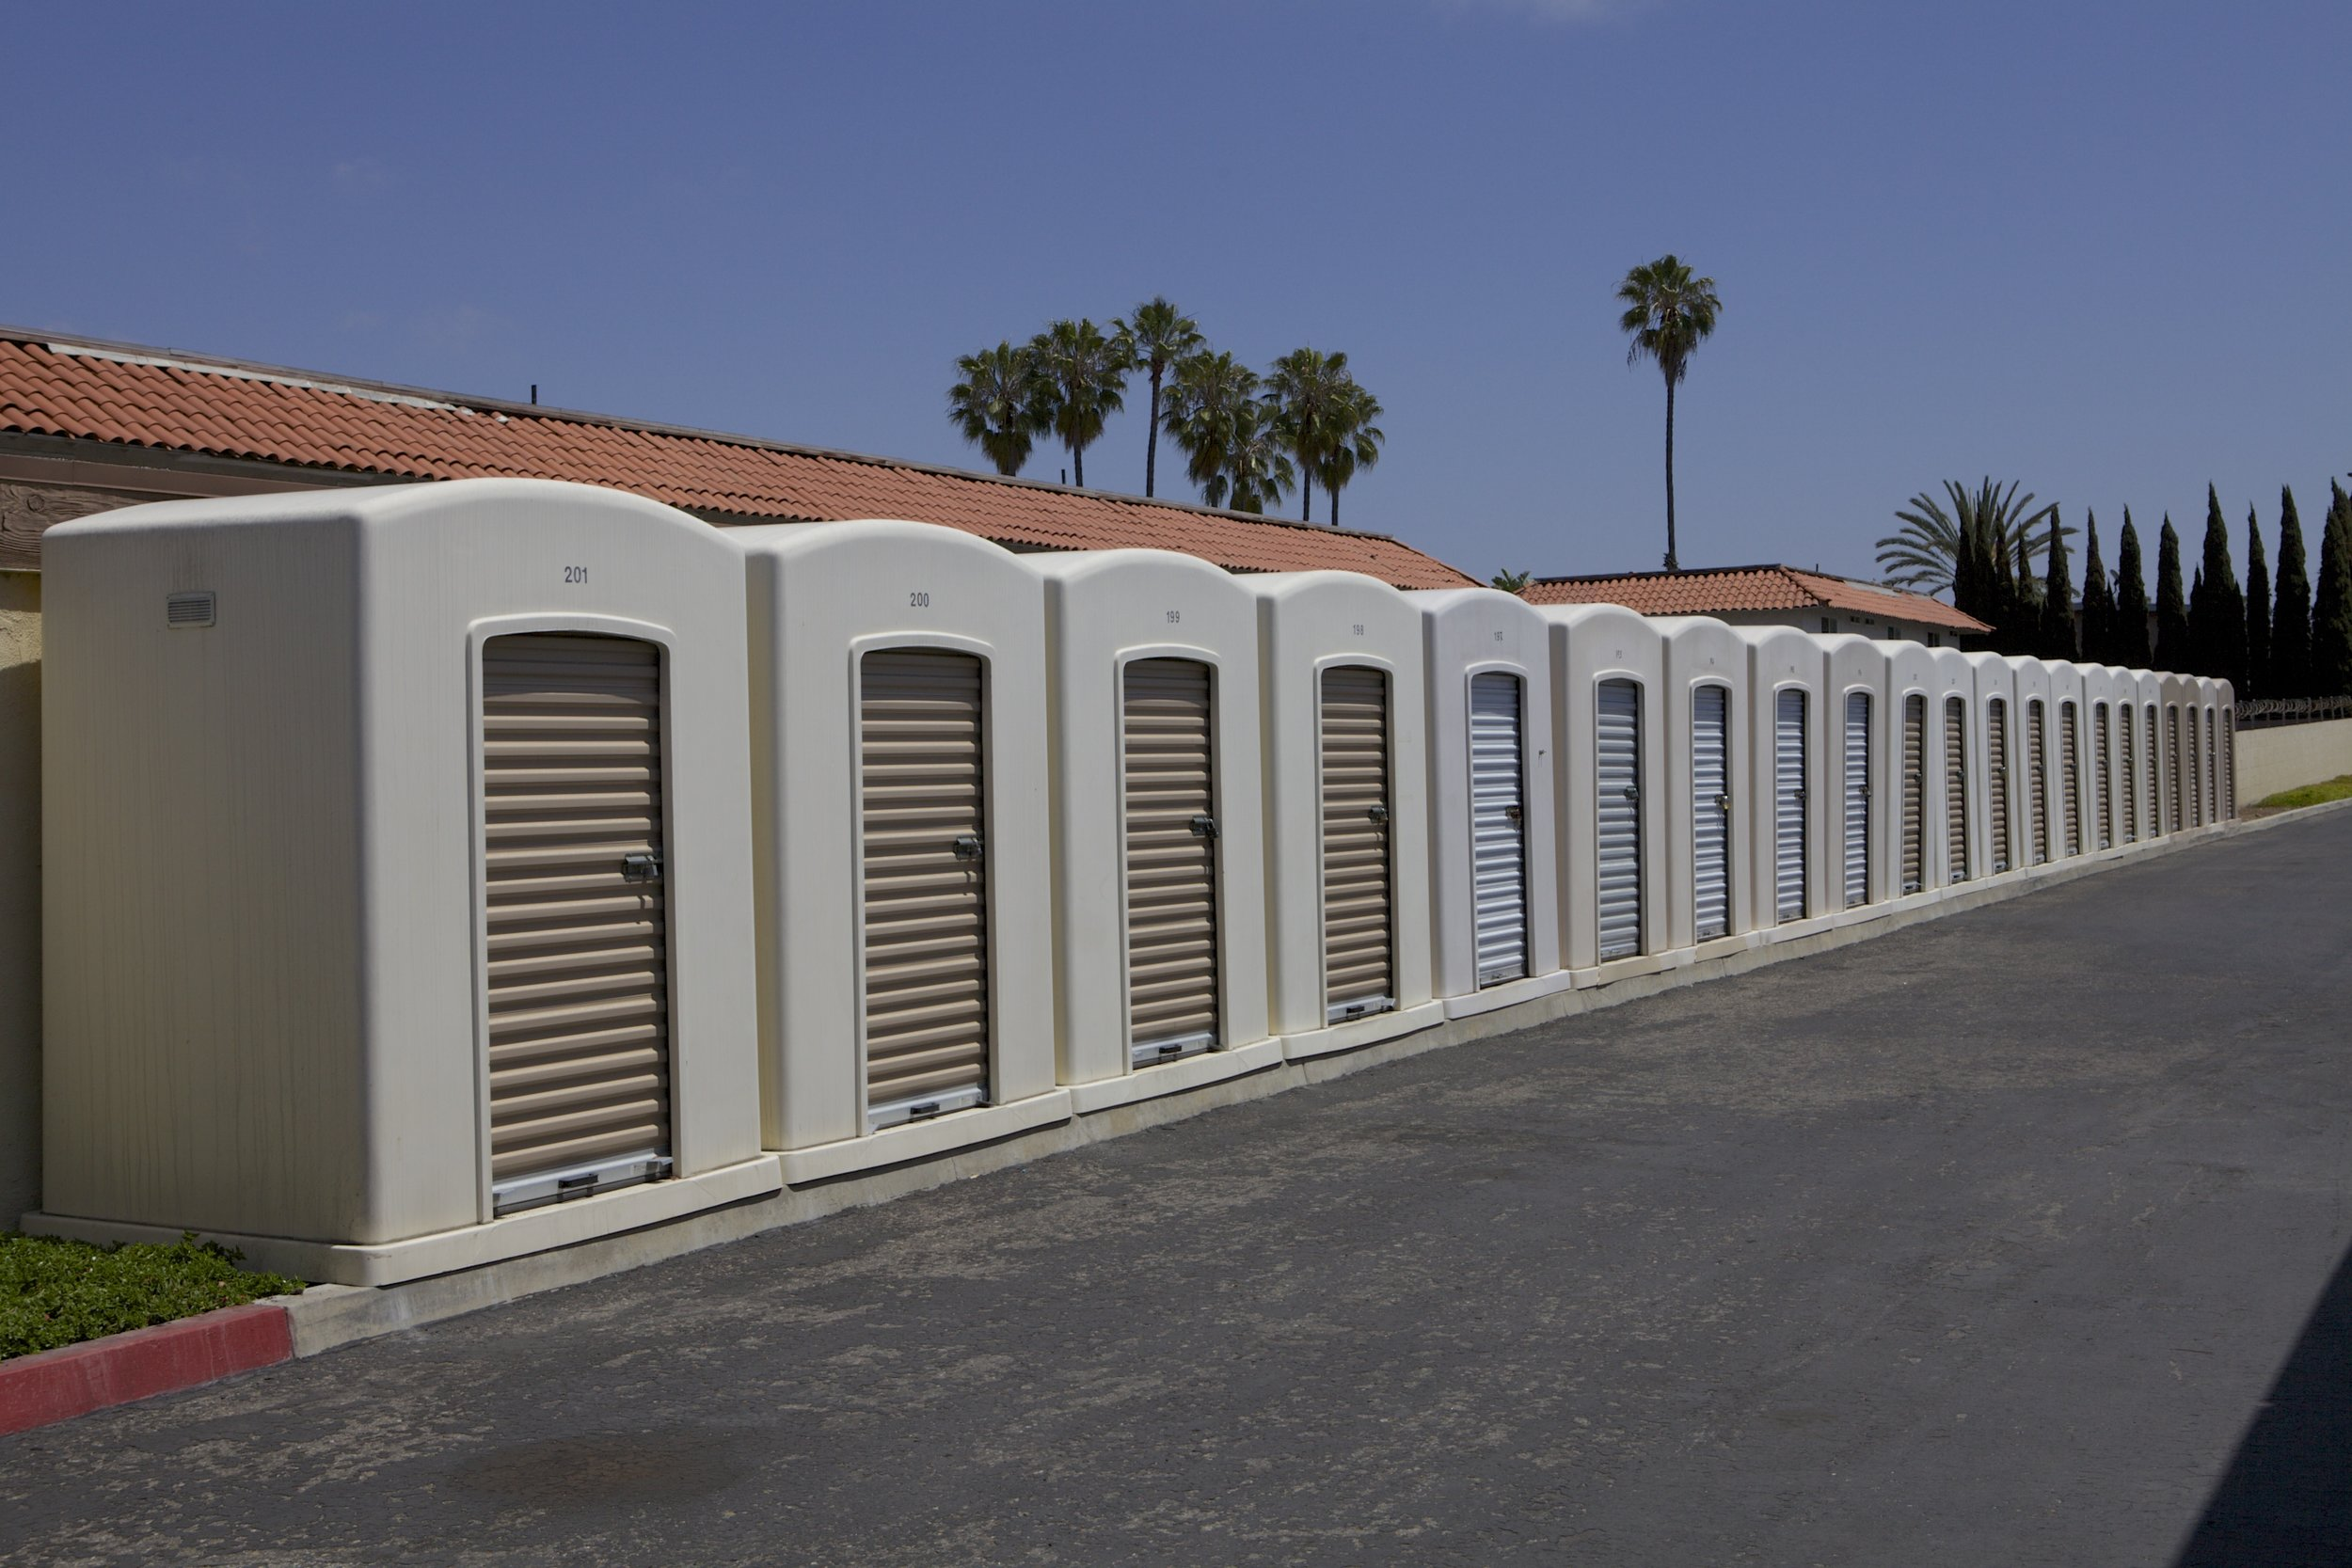 This self storage facility instantly turned a planter into income. No building permits. No construction delays. No headaches.